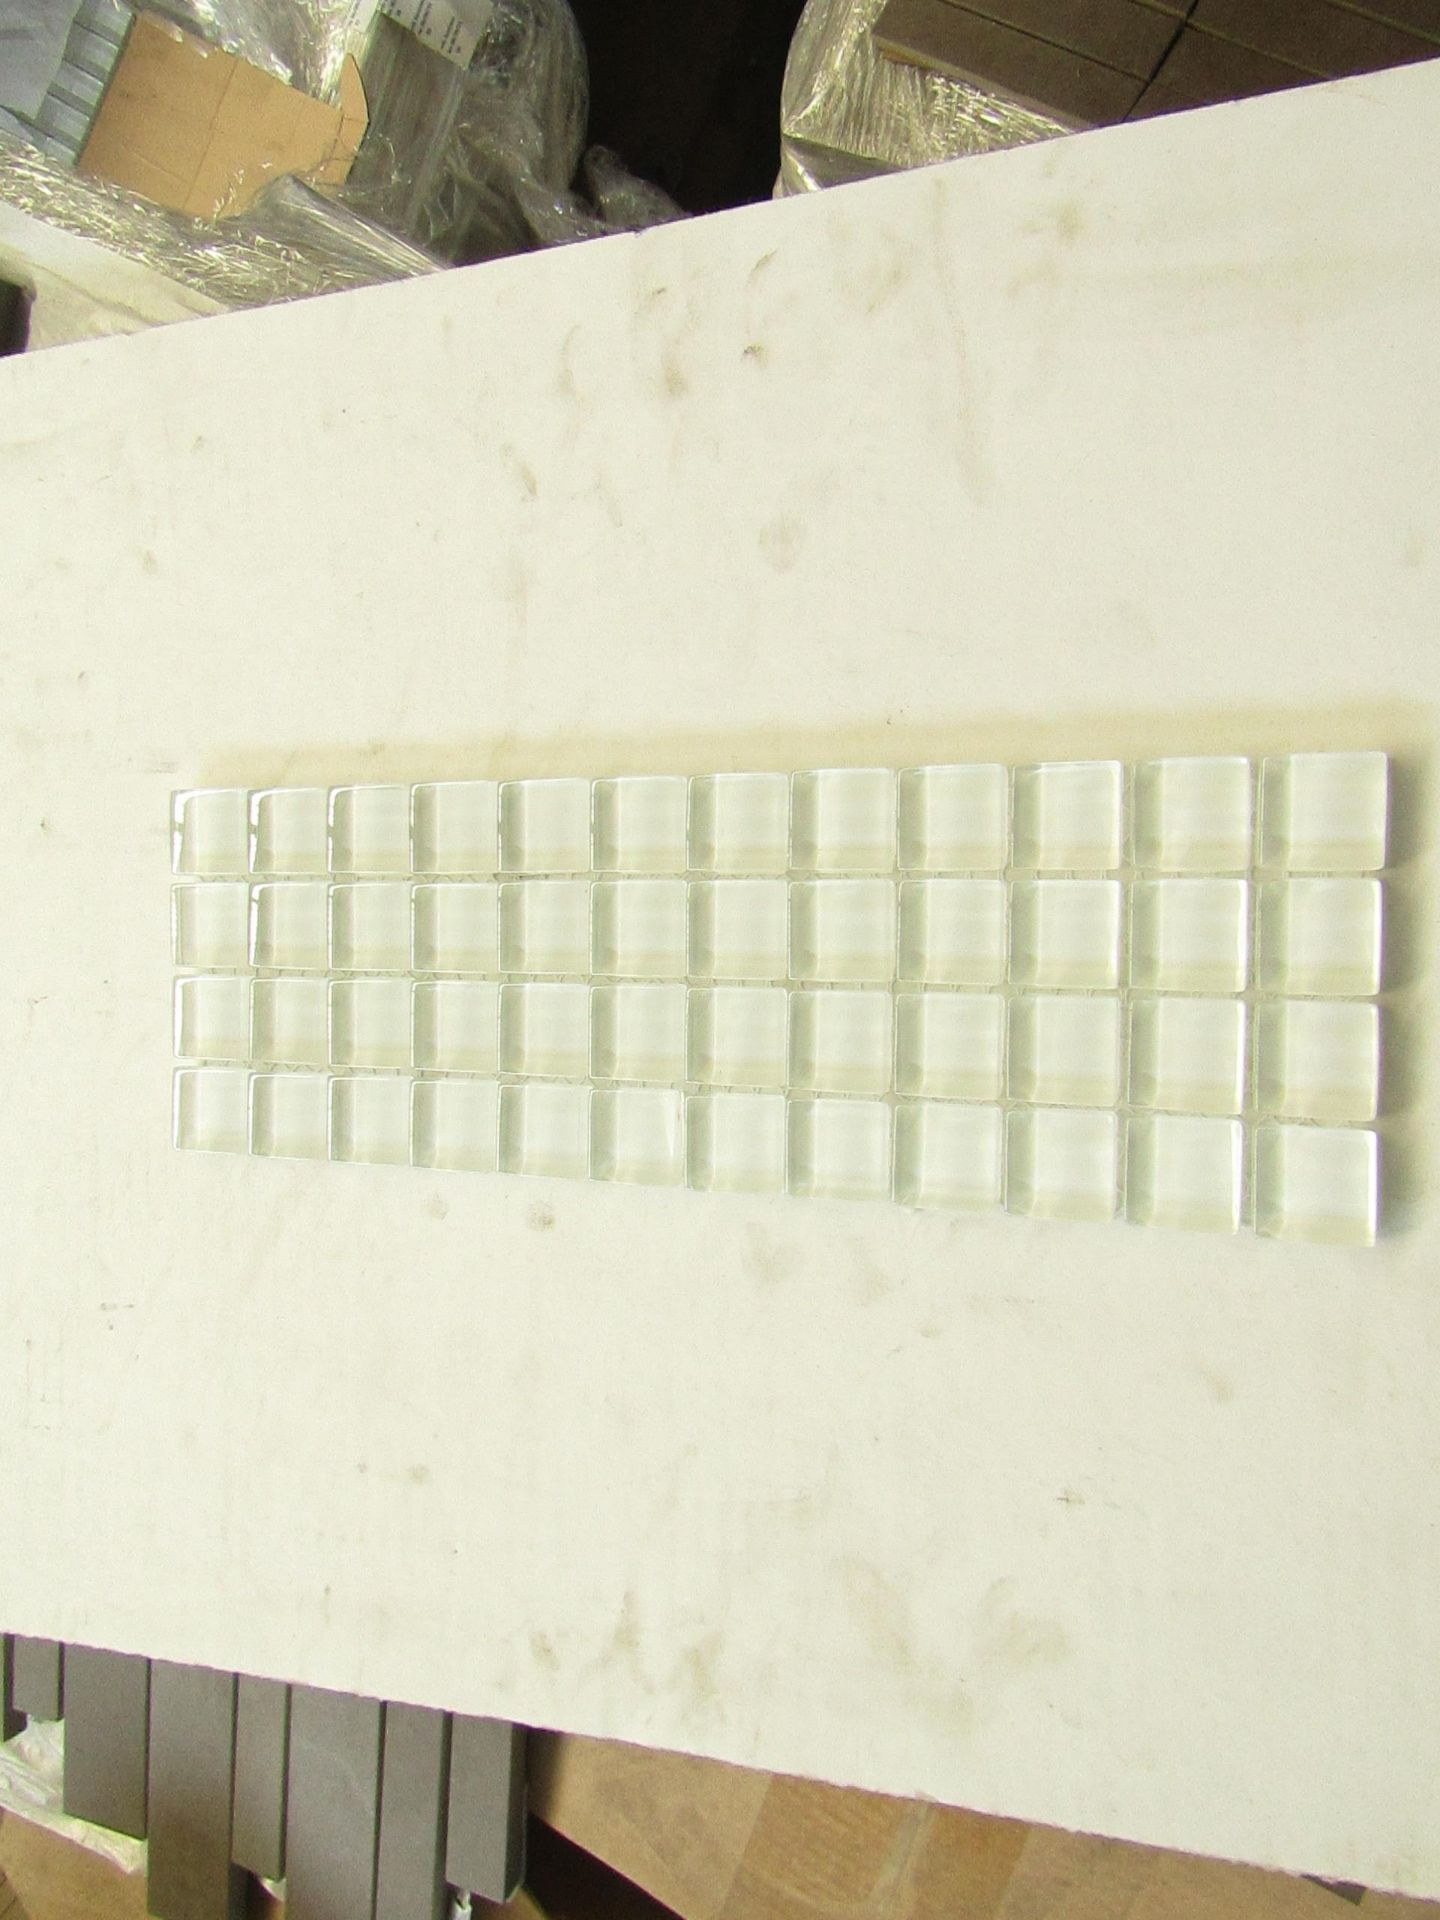 10x Packs of 10 Gemini Crystal 2 Mosaic White (Sheet 306x102mm), brand new and boxed.RRP £104 per